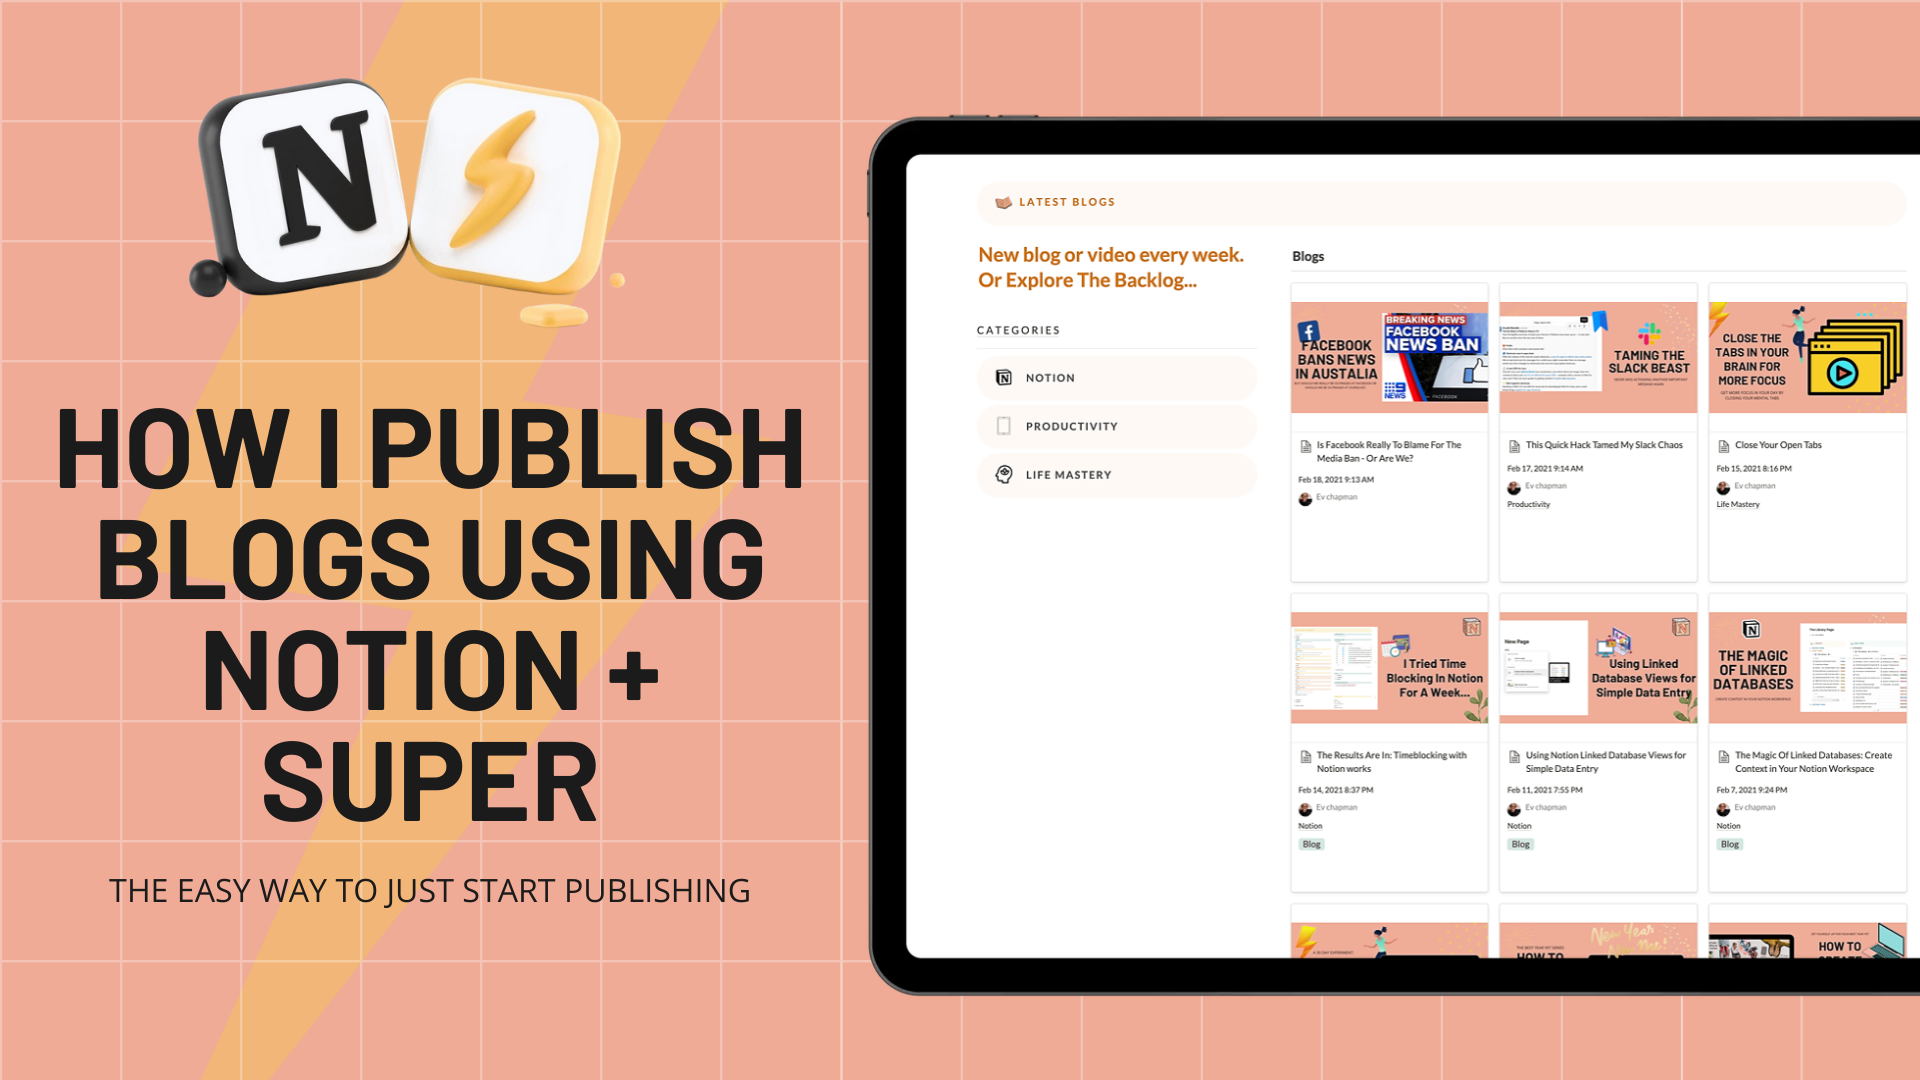 Notion + Super: The Power Combo For Blog Publishing